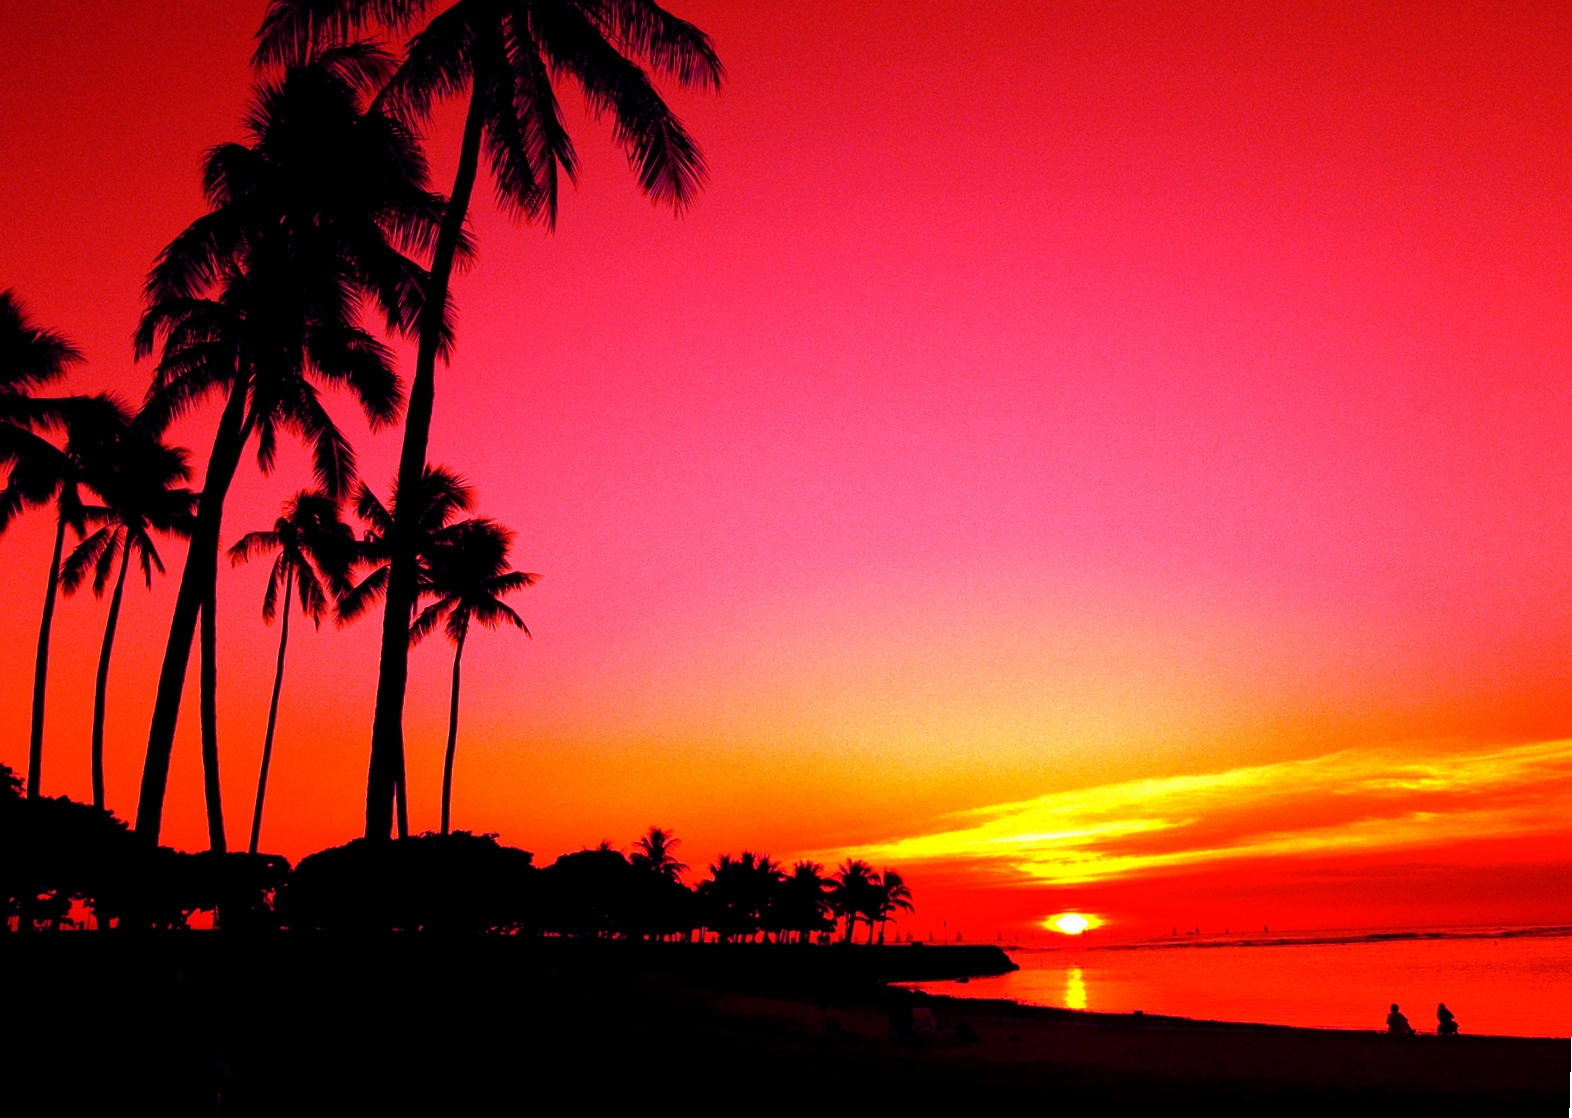 sunset and palm trees edit 2 by mellowax on deviantart